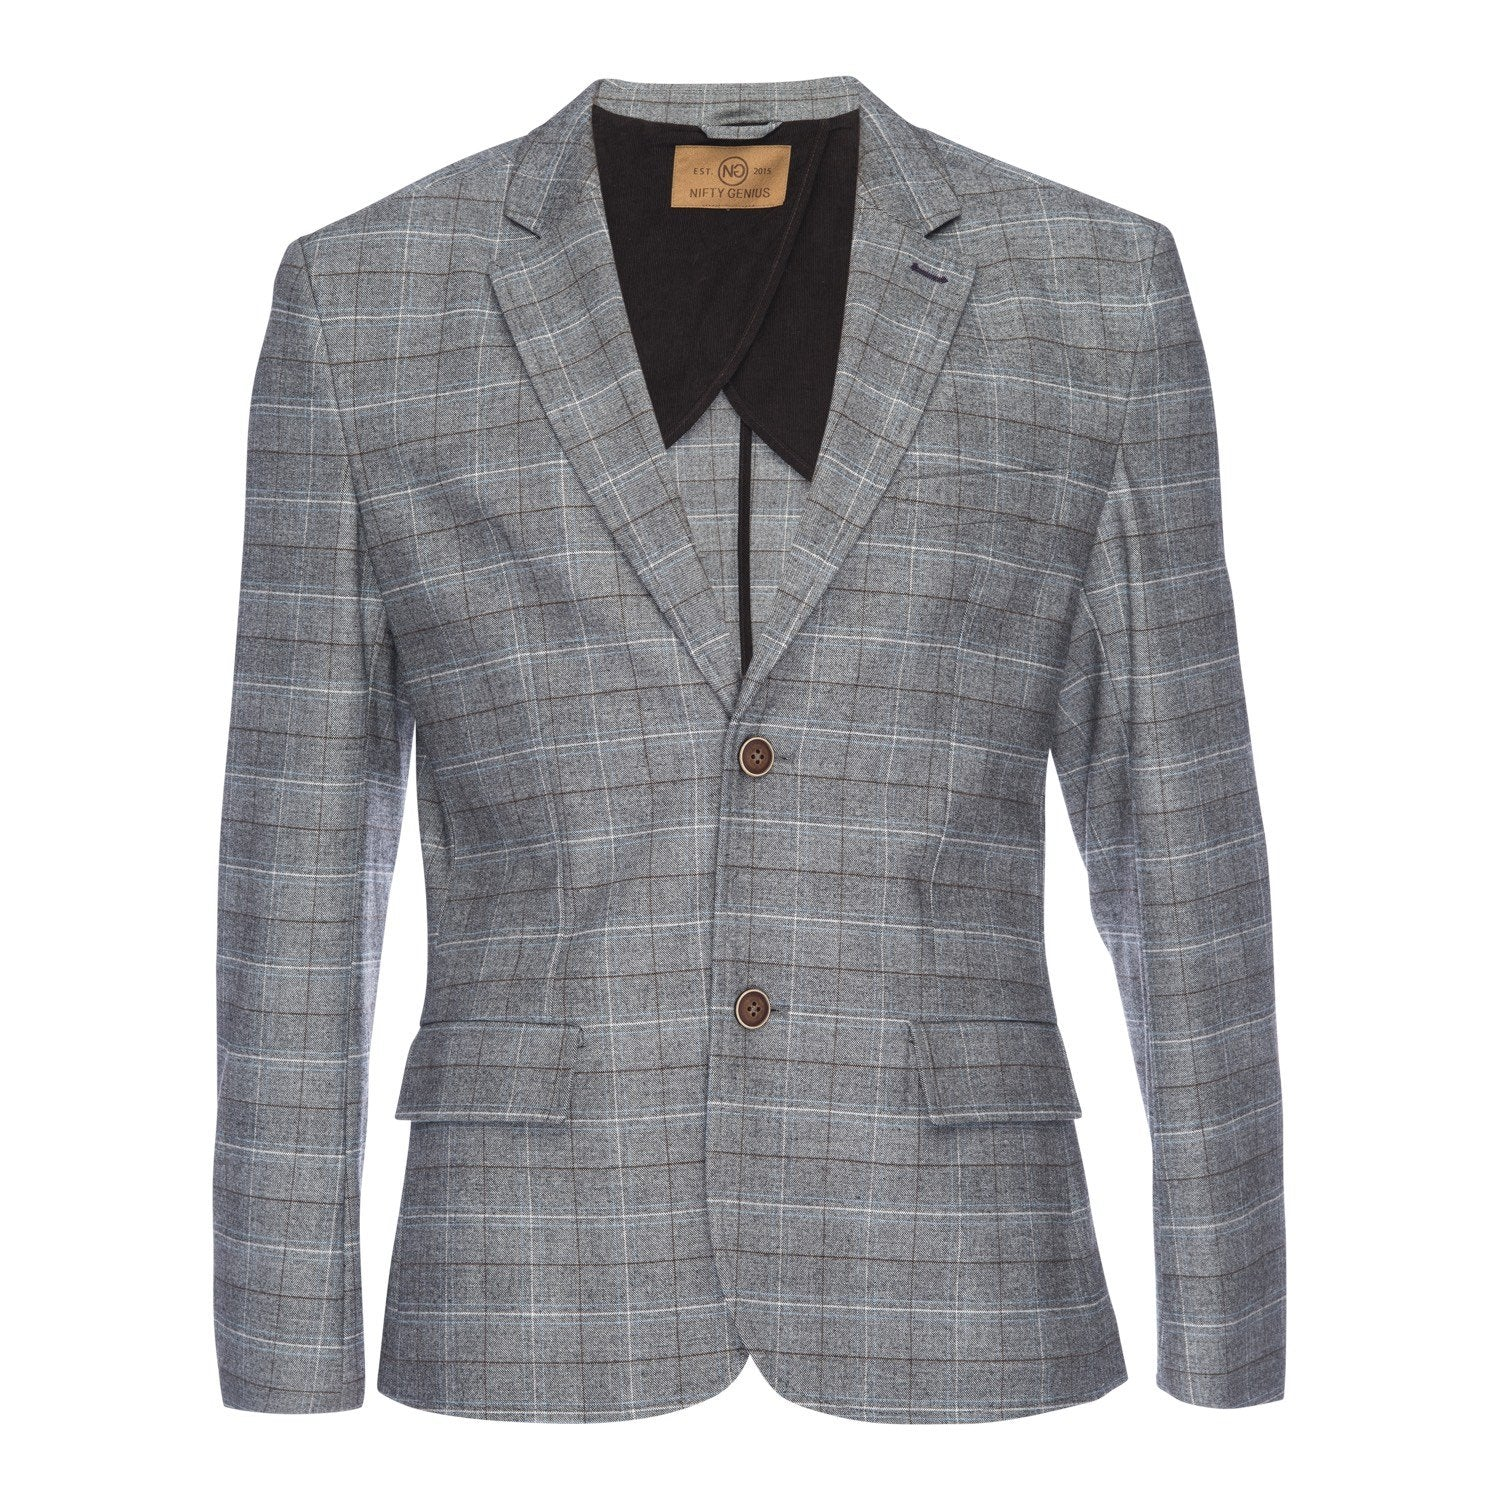 Kurt Notched Lapel Stretch Blazer in Gray Plaid